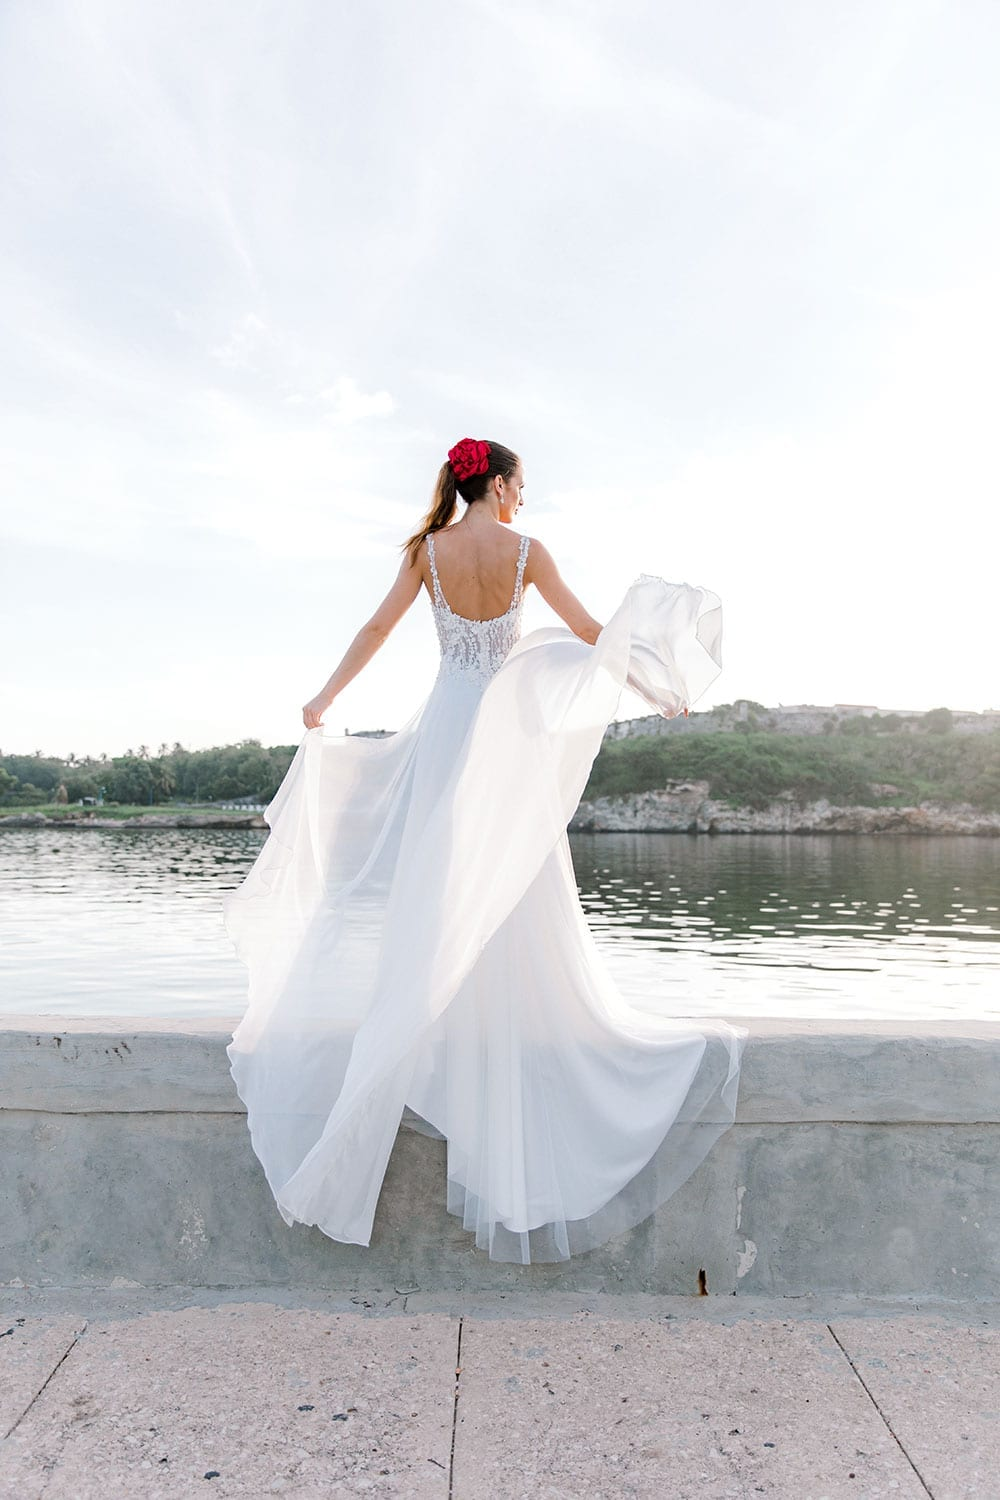 Model wearing Vinka Design Iris Wedding Dress, a Silk Chiffon Wedding Gown posed on a paved walkway in Havana facing away with dress flowing